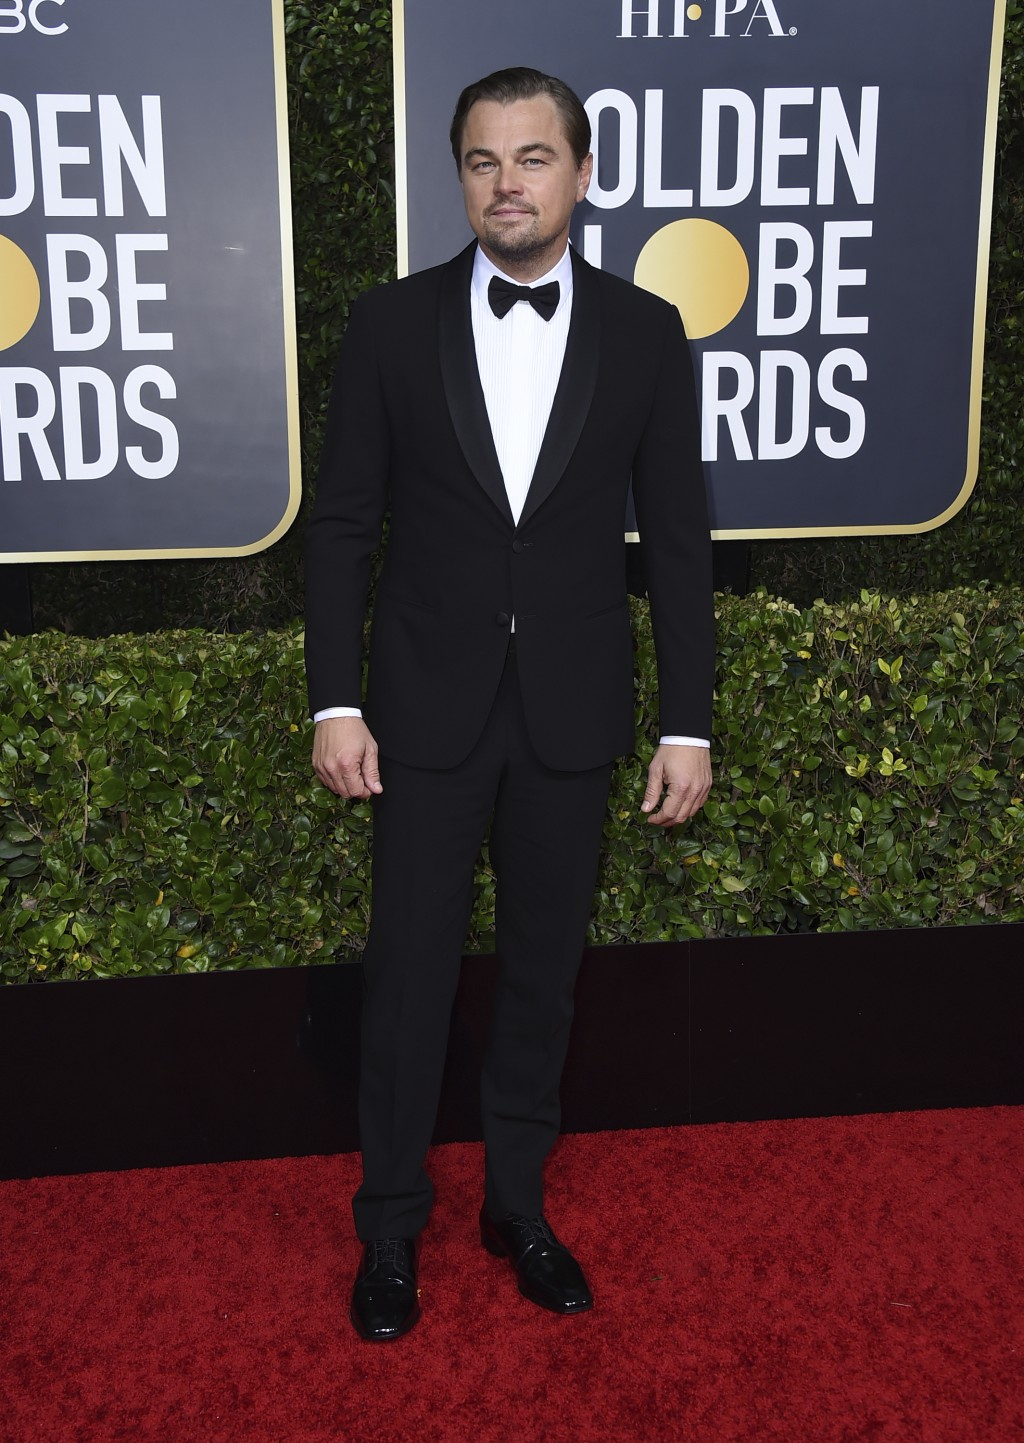 Leonardo DiCaprio arrives at the 77th annual Golden Globe Awards at the Beverly Hilton Hotel on Sunday, Jan. 5, 2020, in Beverly Hills, Calif. (Photo ...